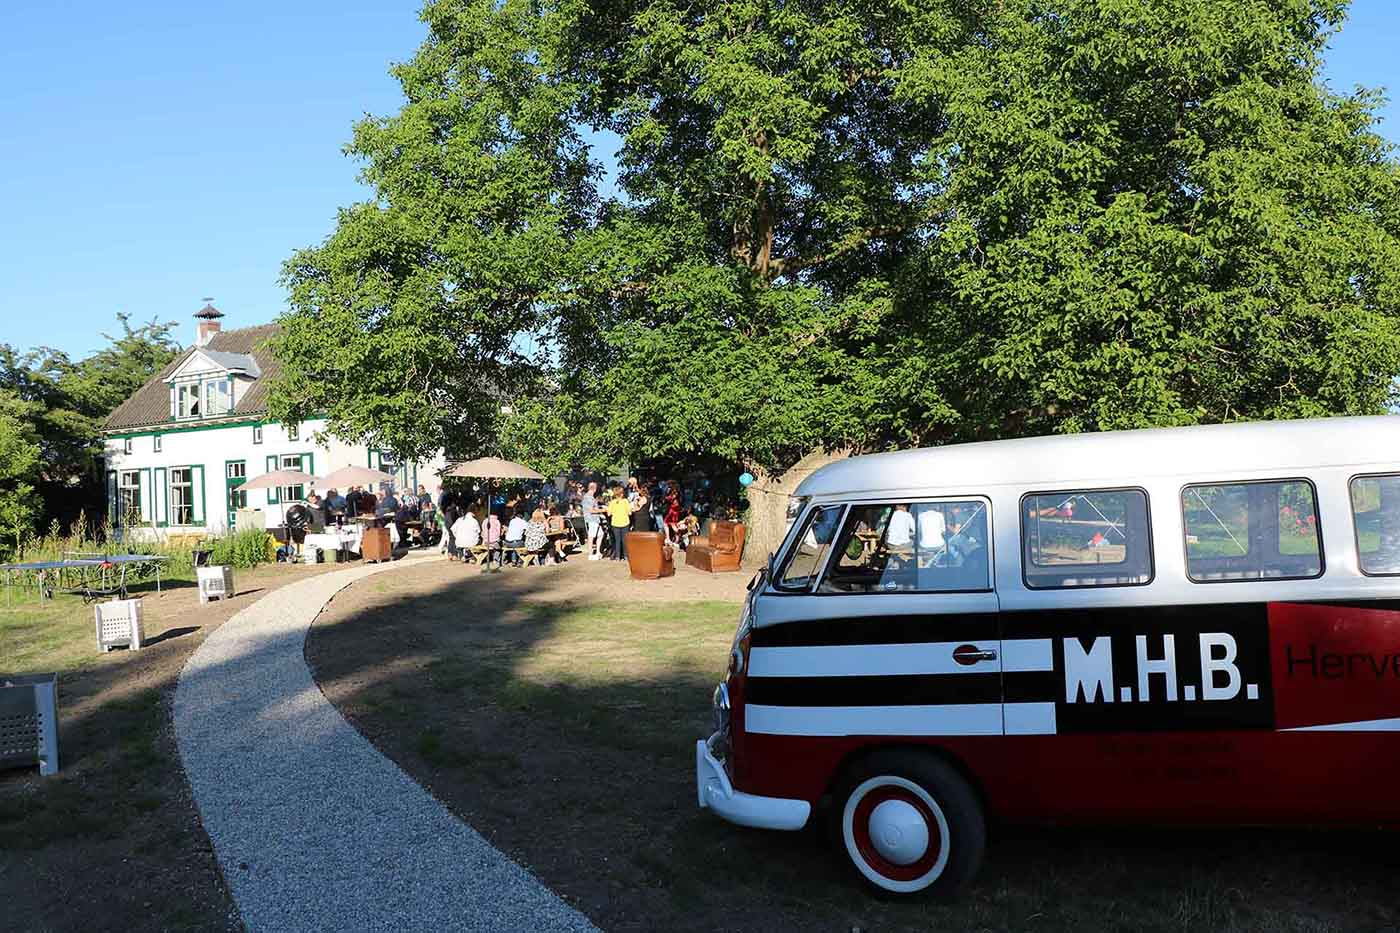 A summer bbq festival for MHB employees with the MHB van